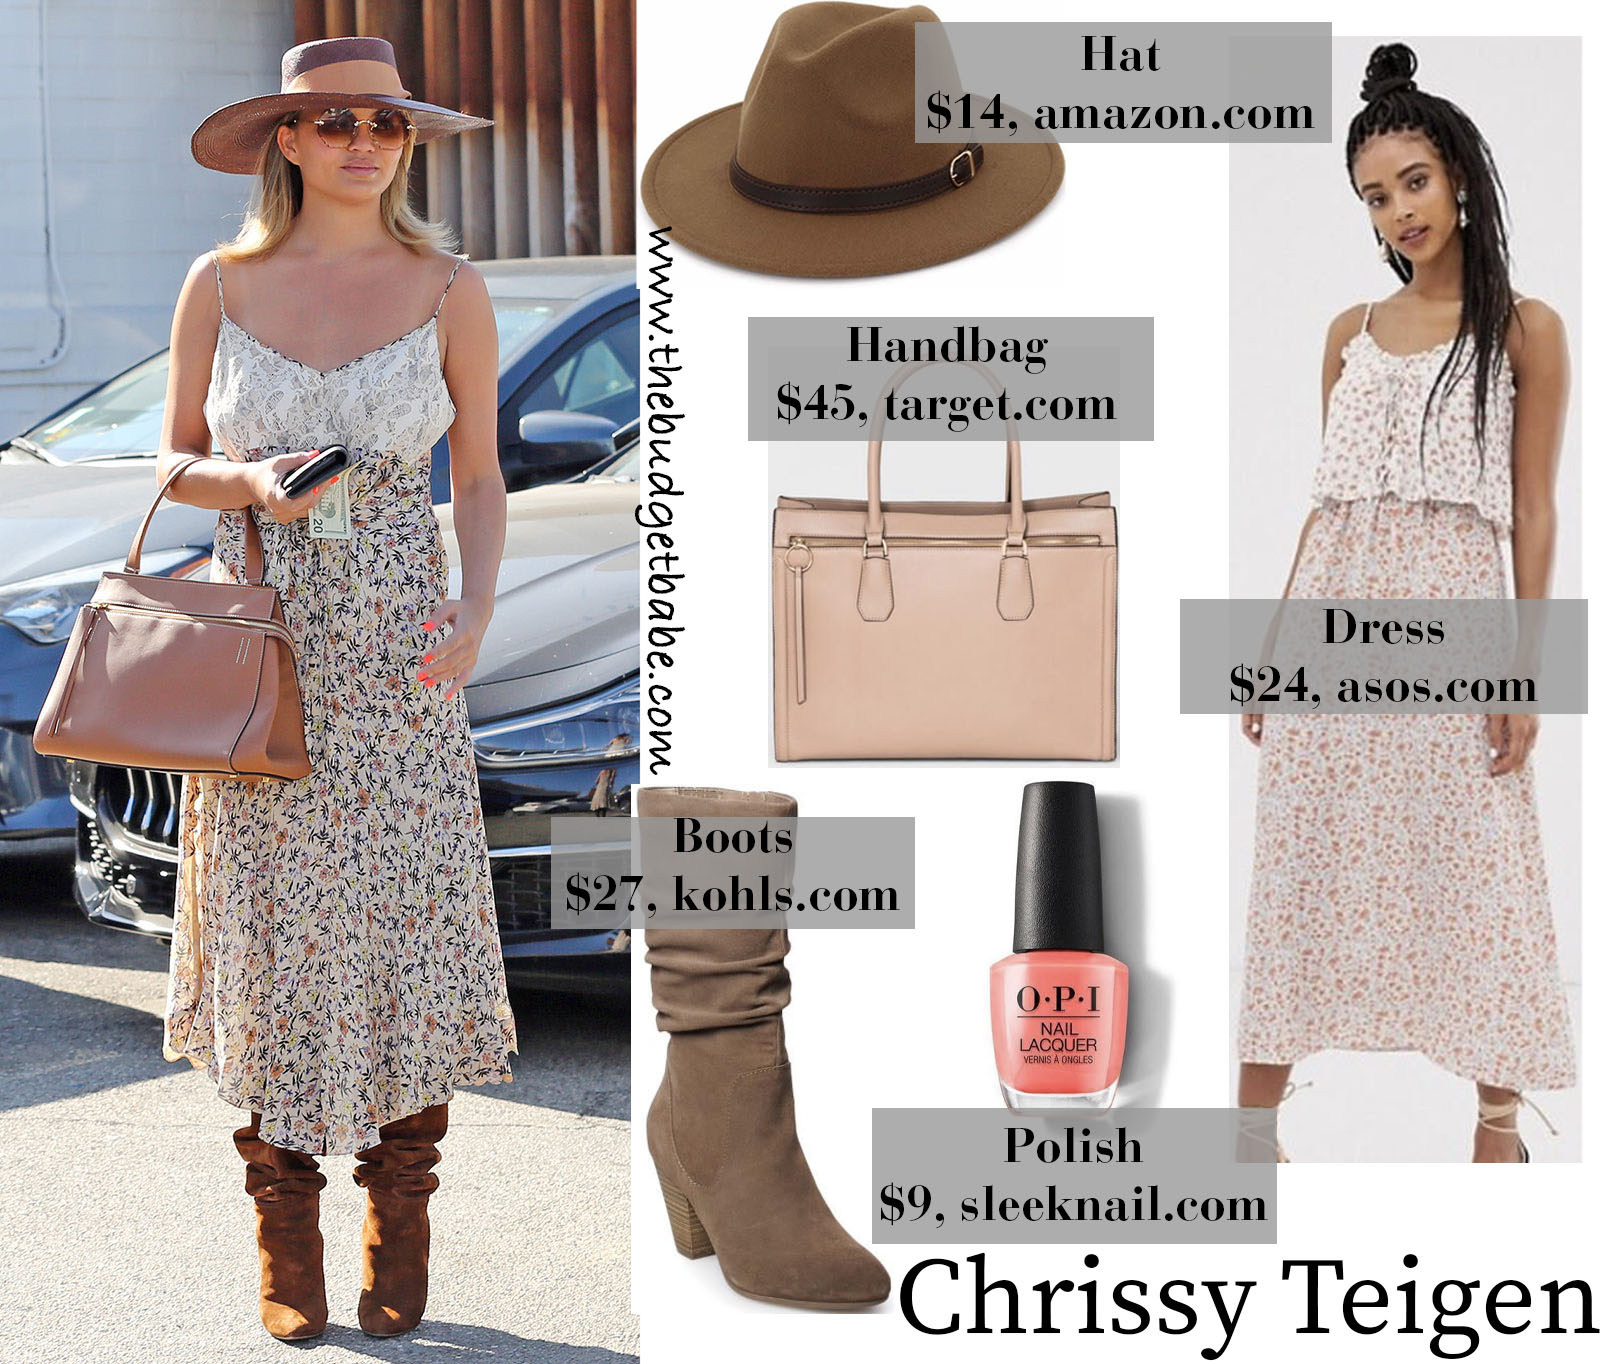 Chrissy Teigen's Floral Midi Dress, Suede Boots, and Wide Brim Hat